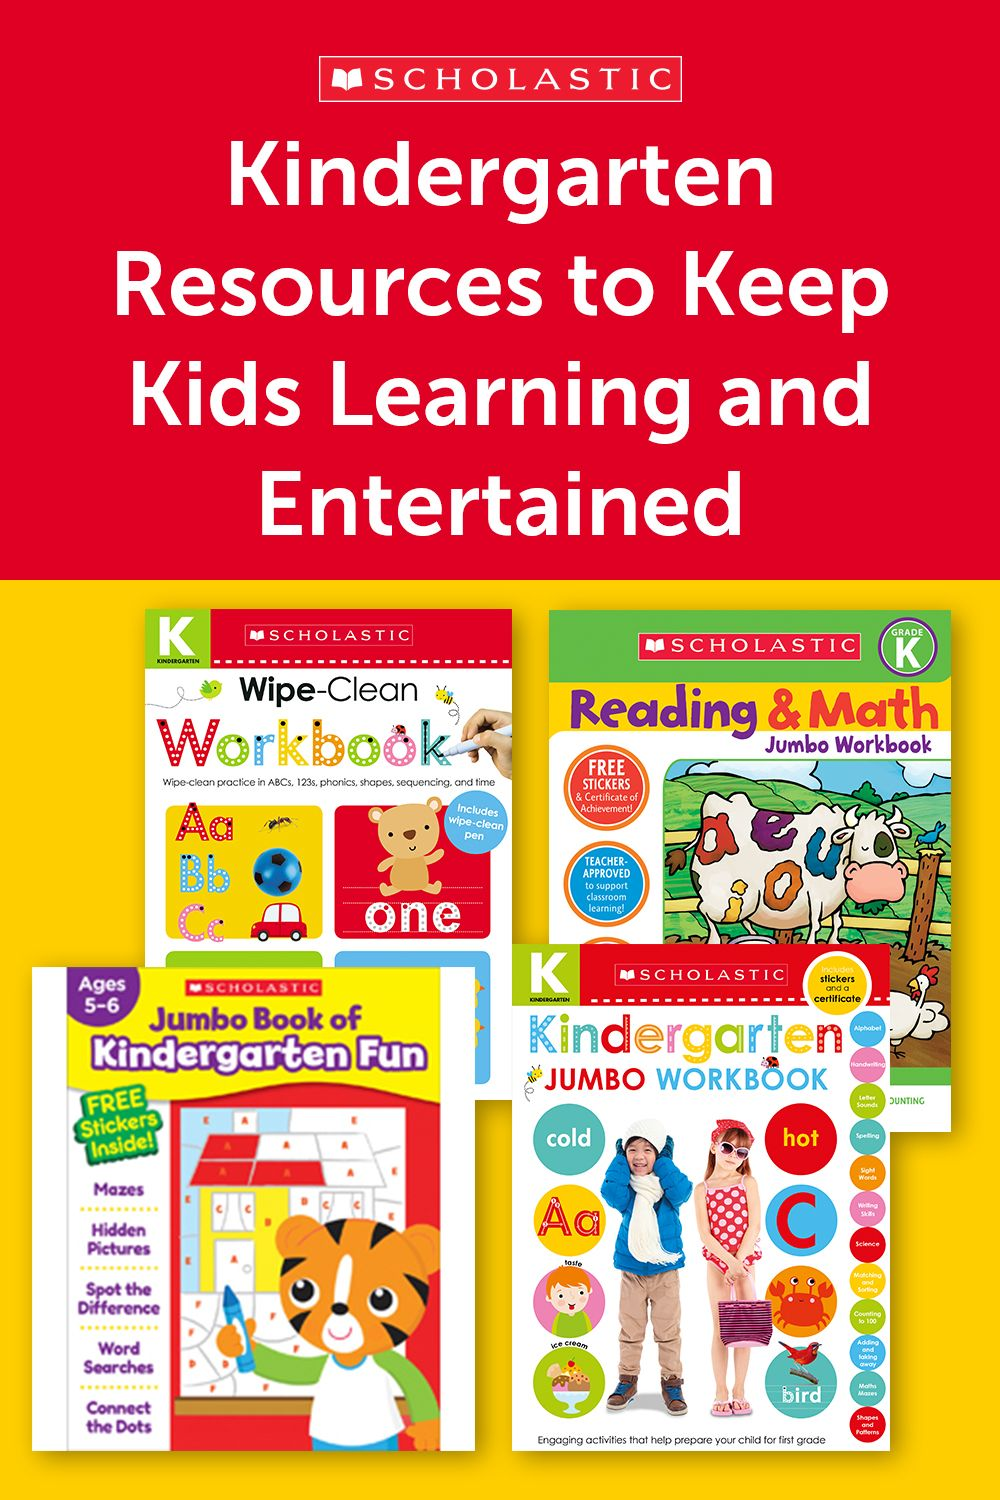 A Collection Of Scholastic Workbooks And Activities To Keep